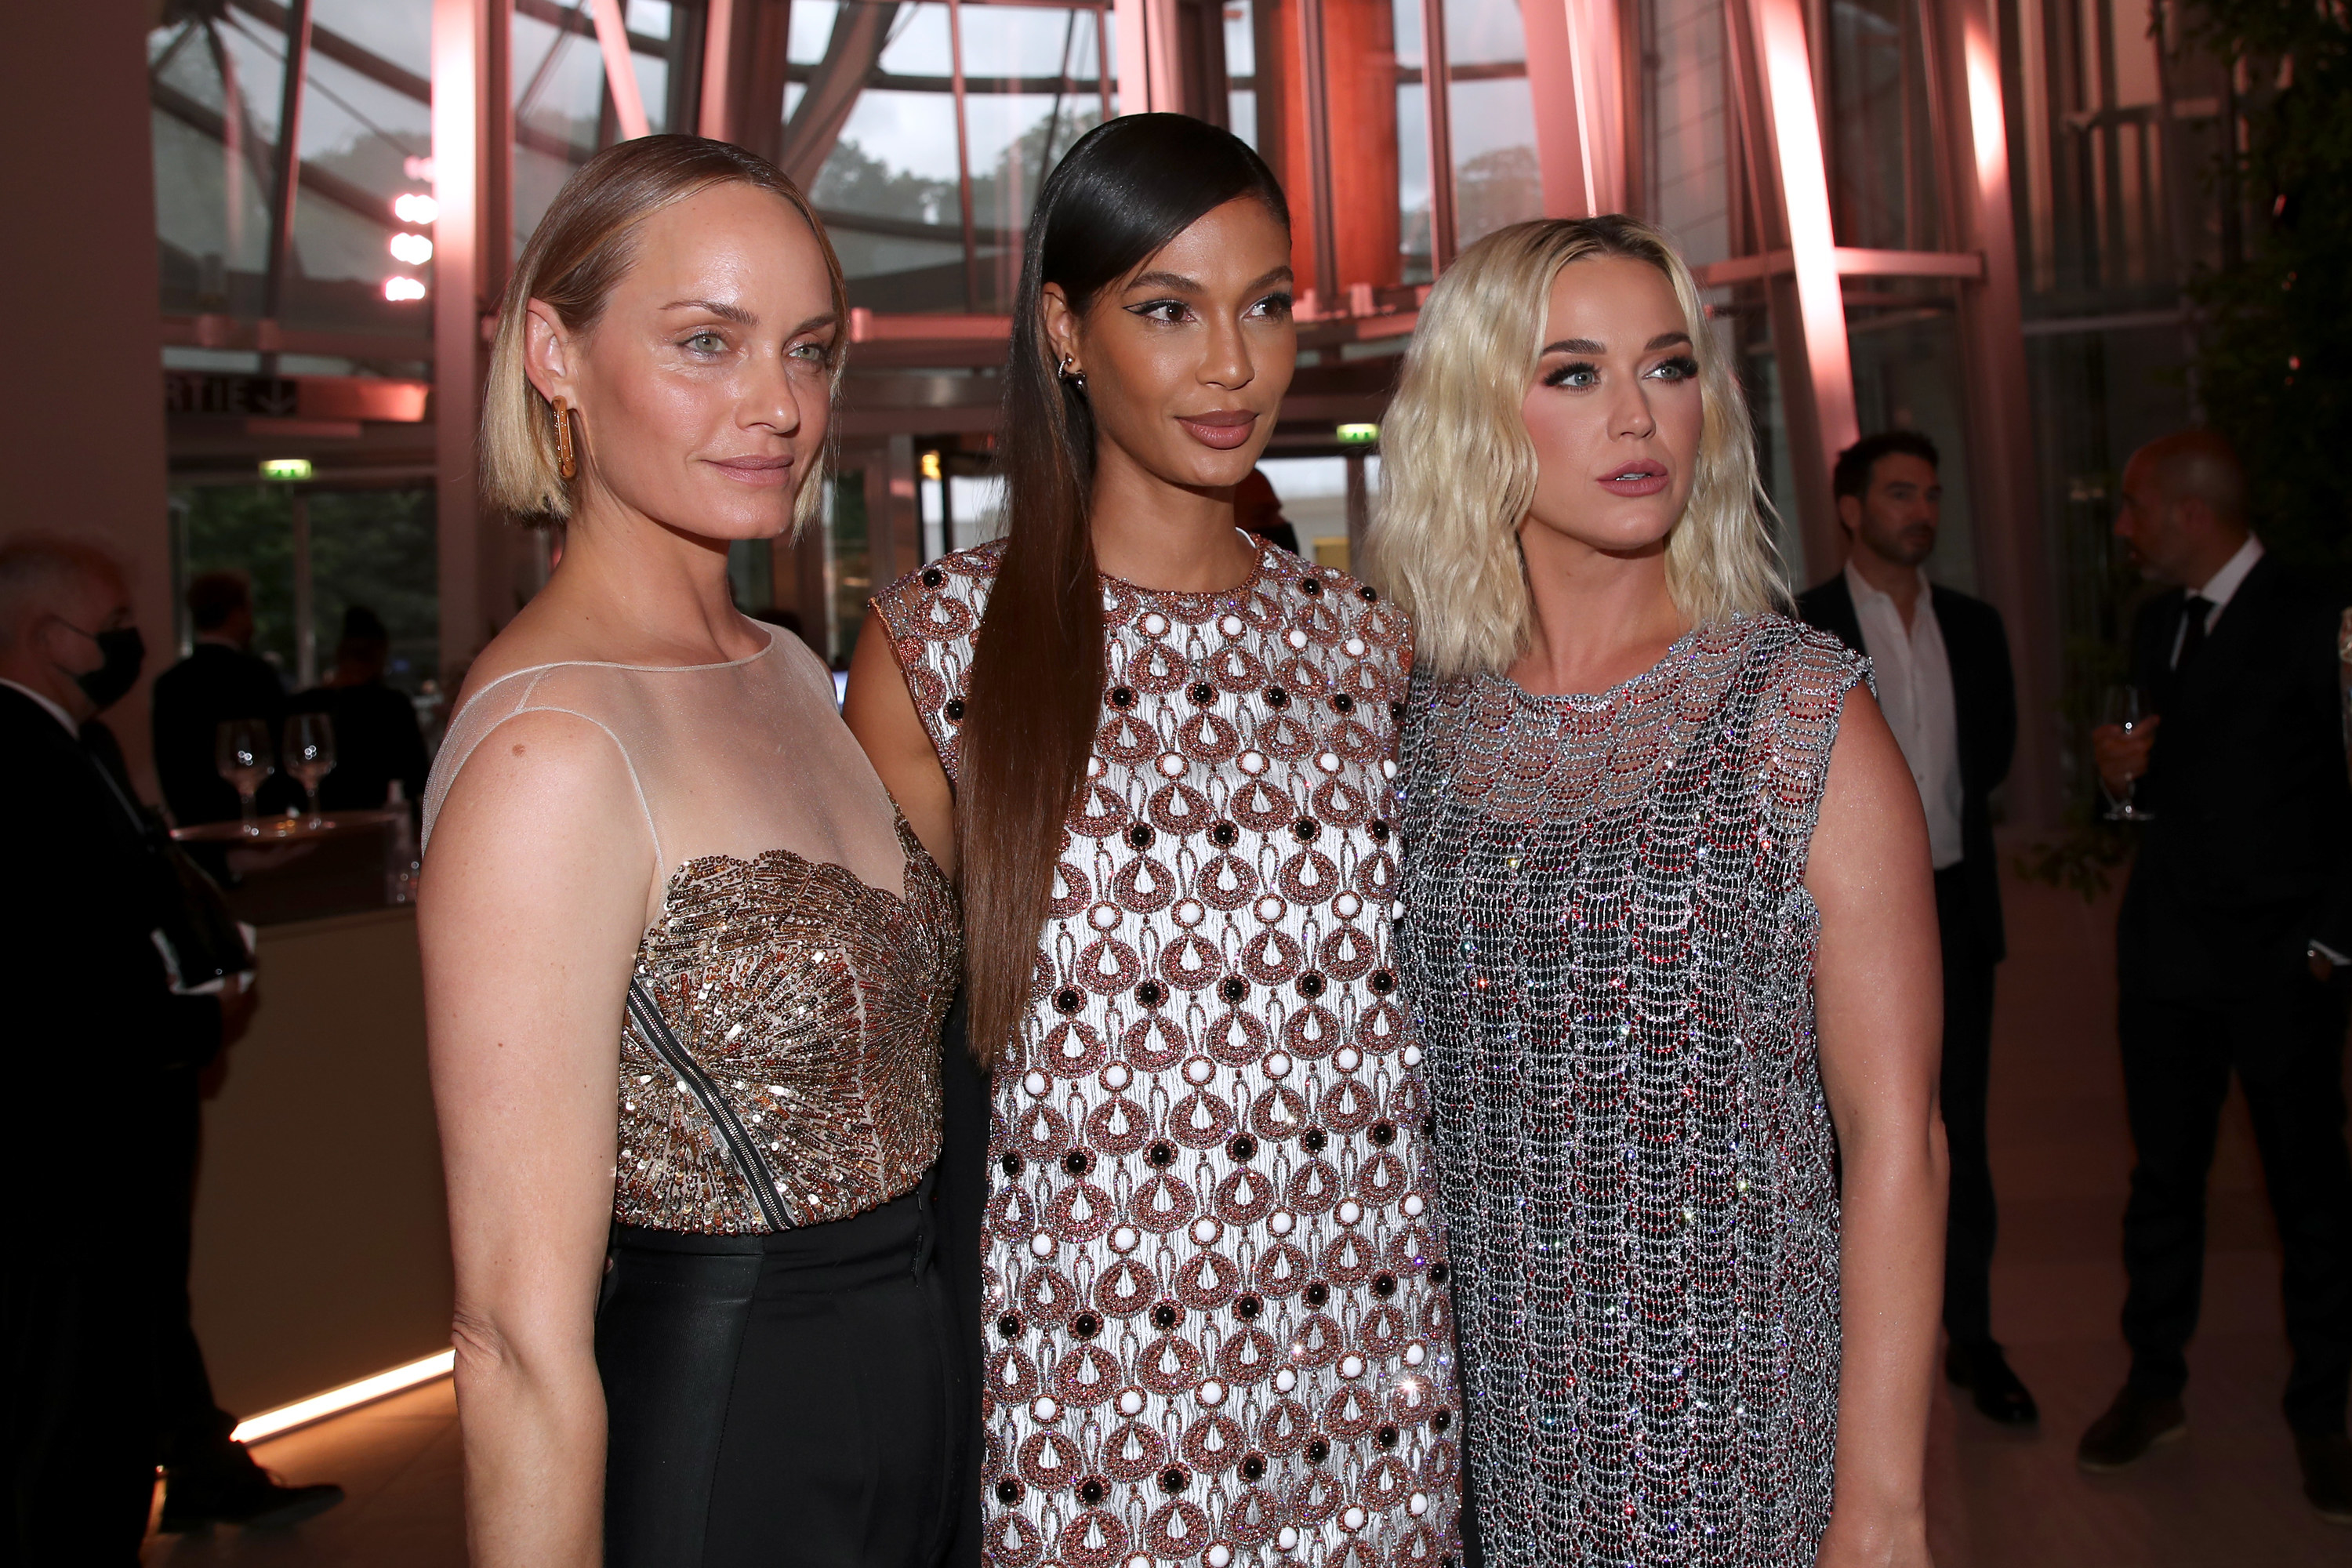 Amber Valletta, Joan Smalls, and Katy Perry are photographed at a Louis Vuitton event in Paris